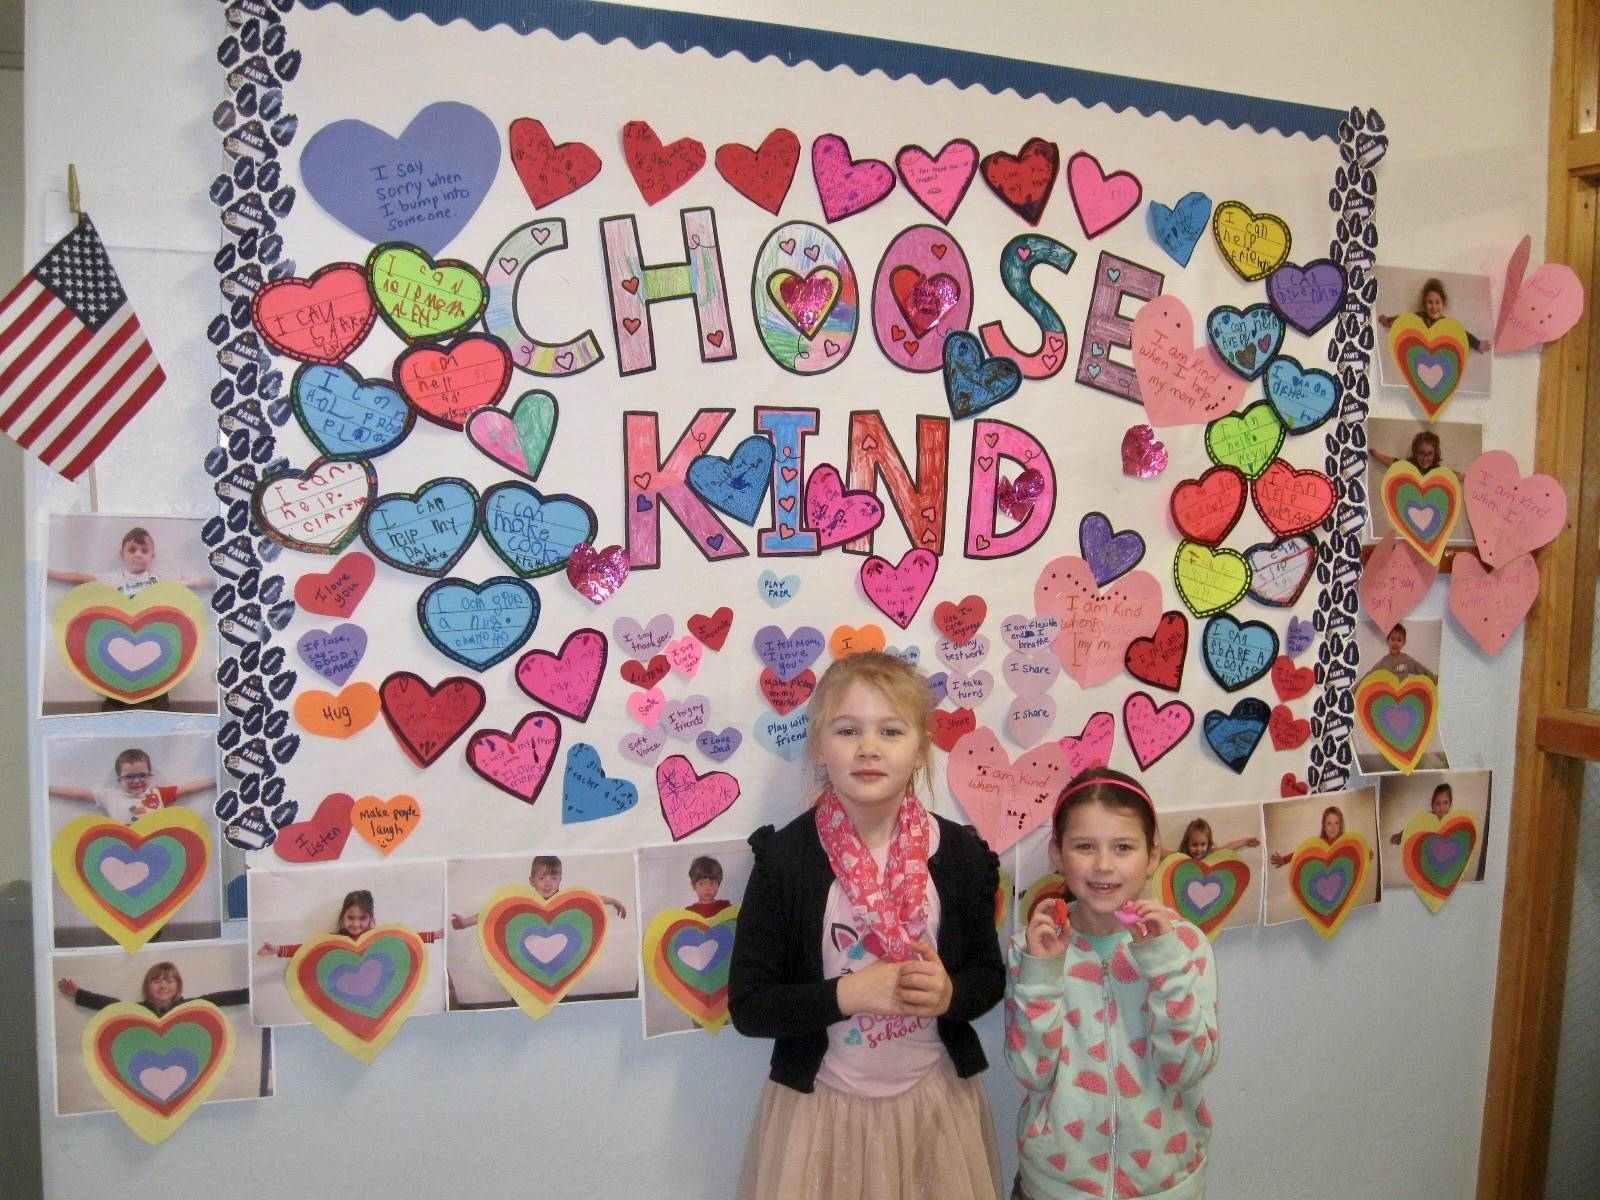 2 students with Choose Kind bulletin board.